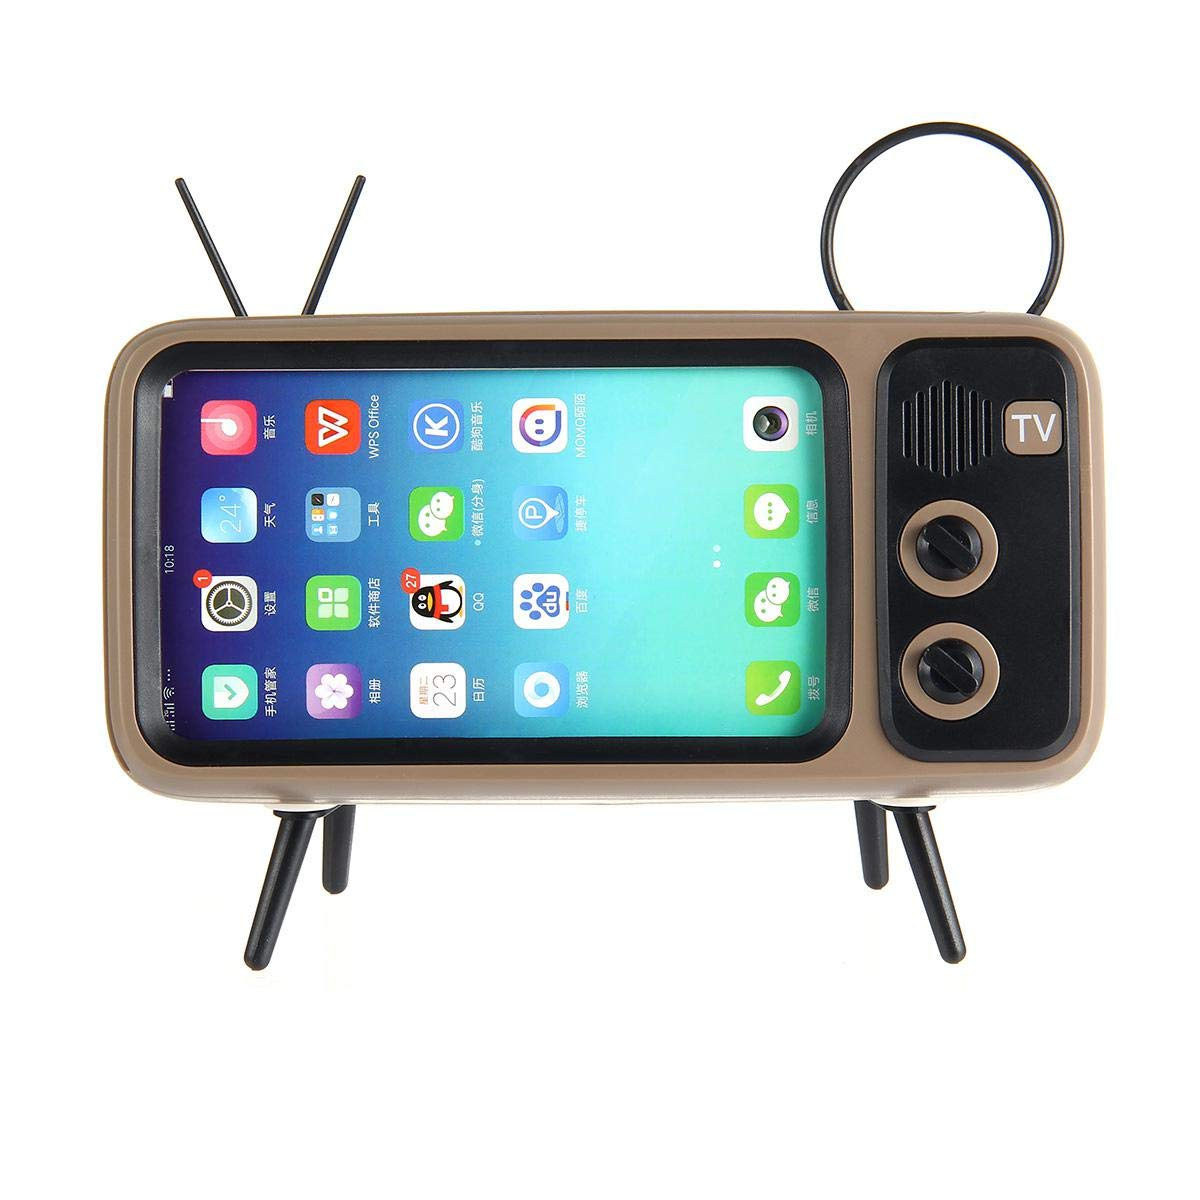 Womdee Retro TV Bluetooth Speaker V4.2 Brown TF Card Slot 3D Stereo Sound Quality Portable Loudspeaker Also Cell Phone holder Art Decoration AUX FM Bluetooth Optional Vintage Wireless Radio